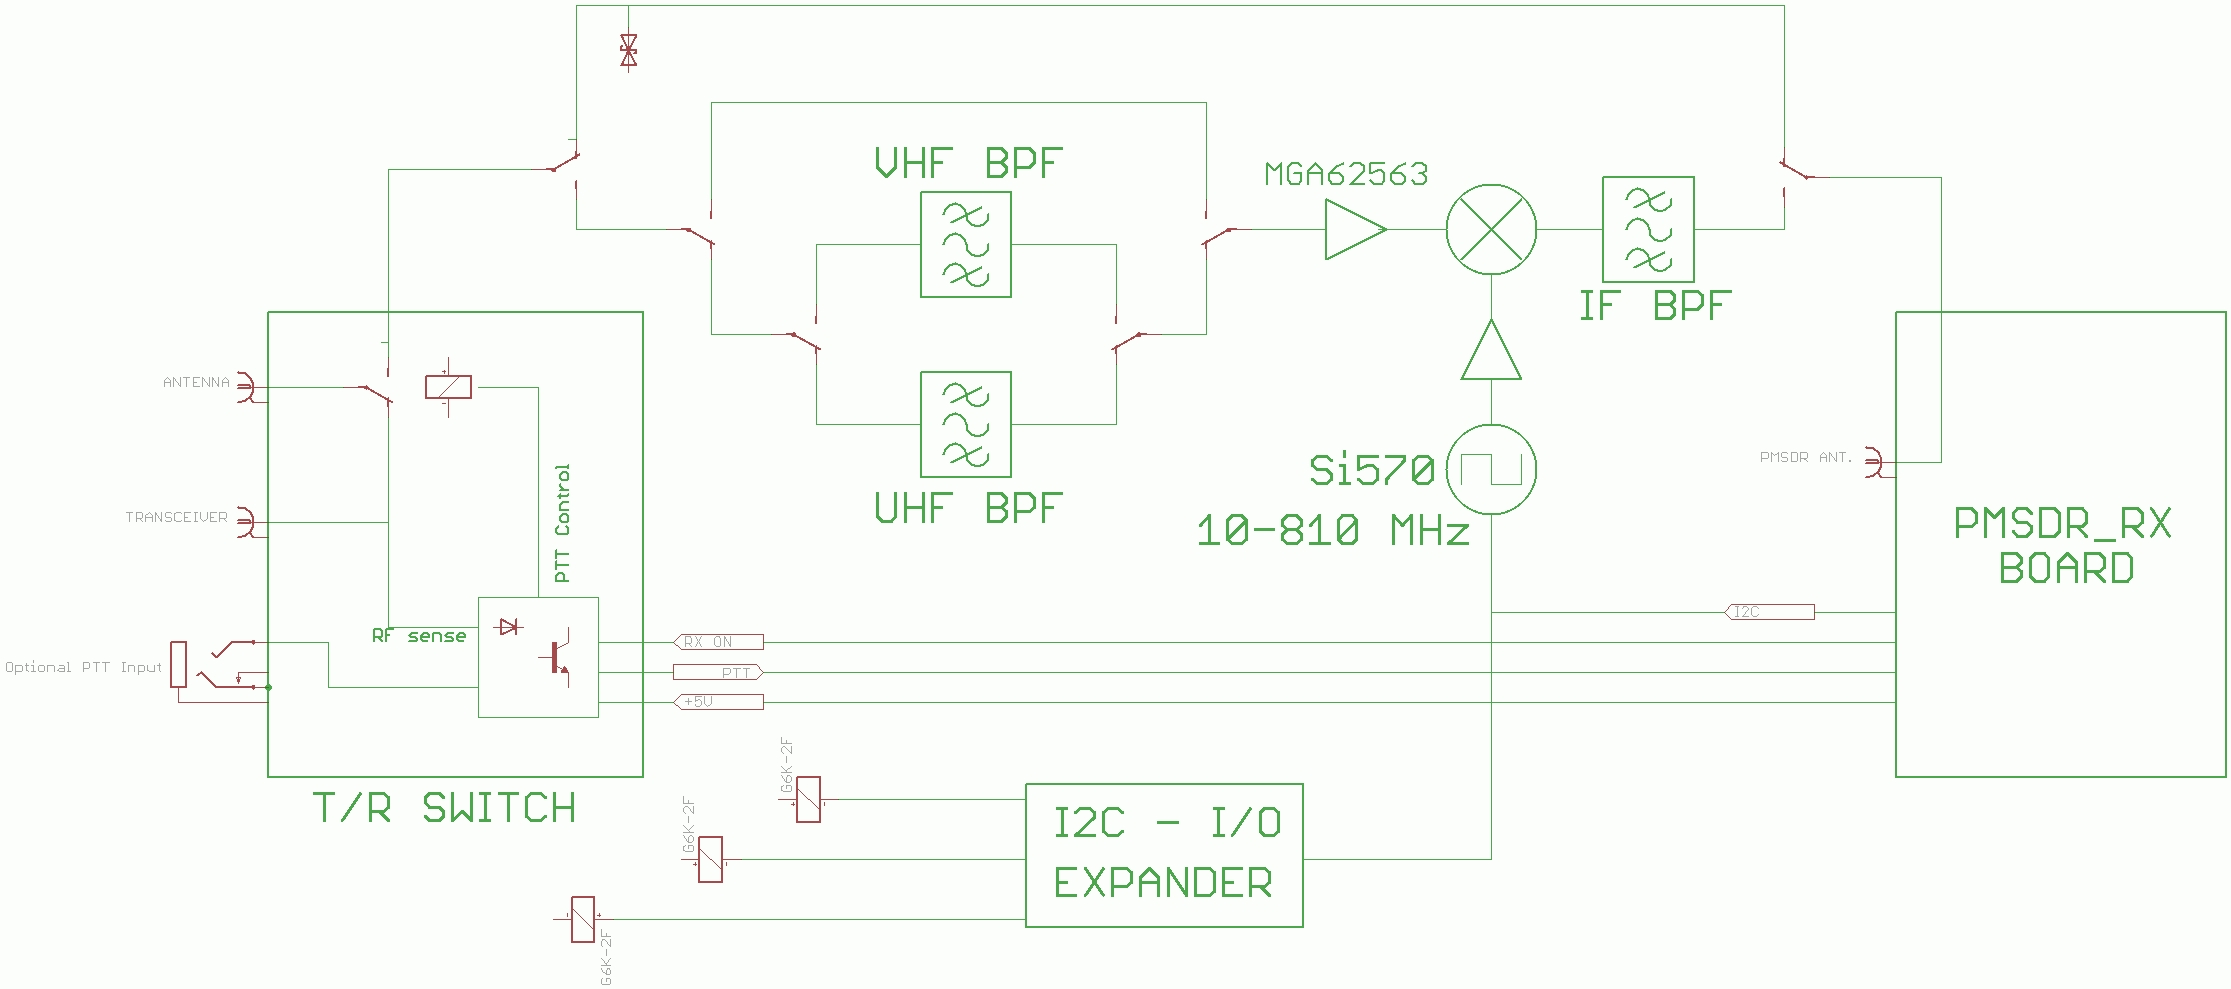 PM-SDR 2.1 Downconverter Board